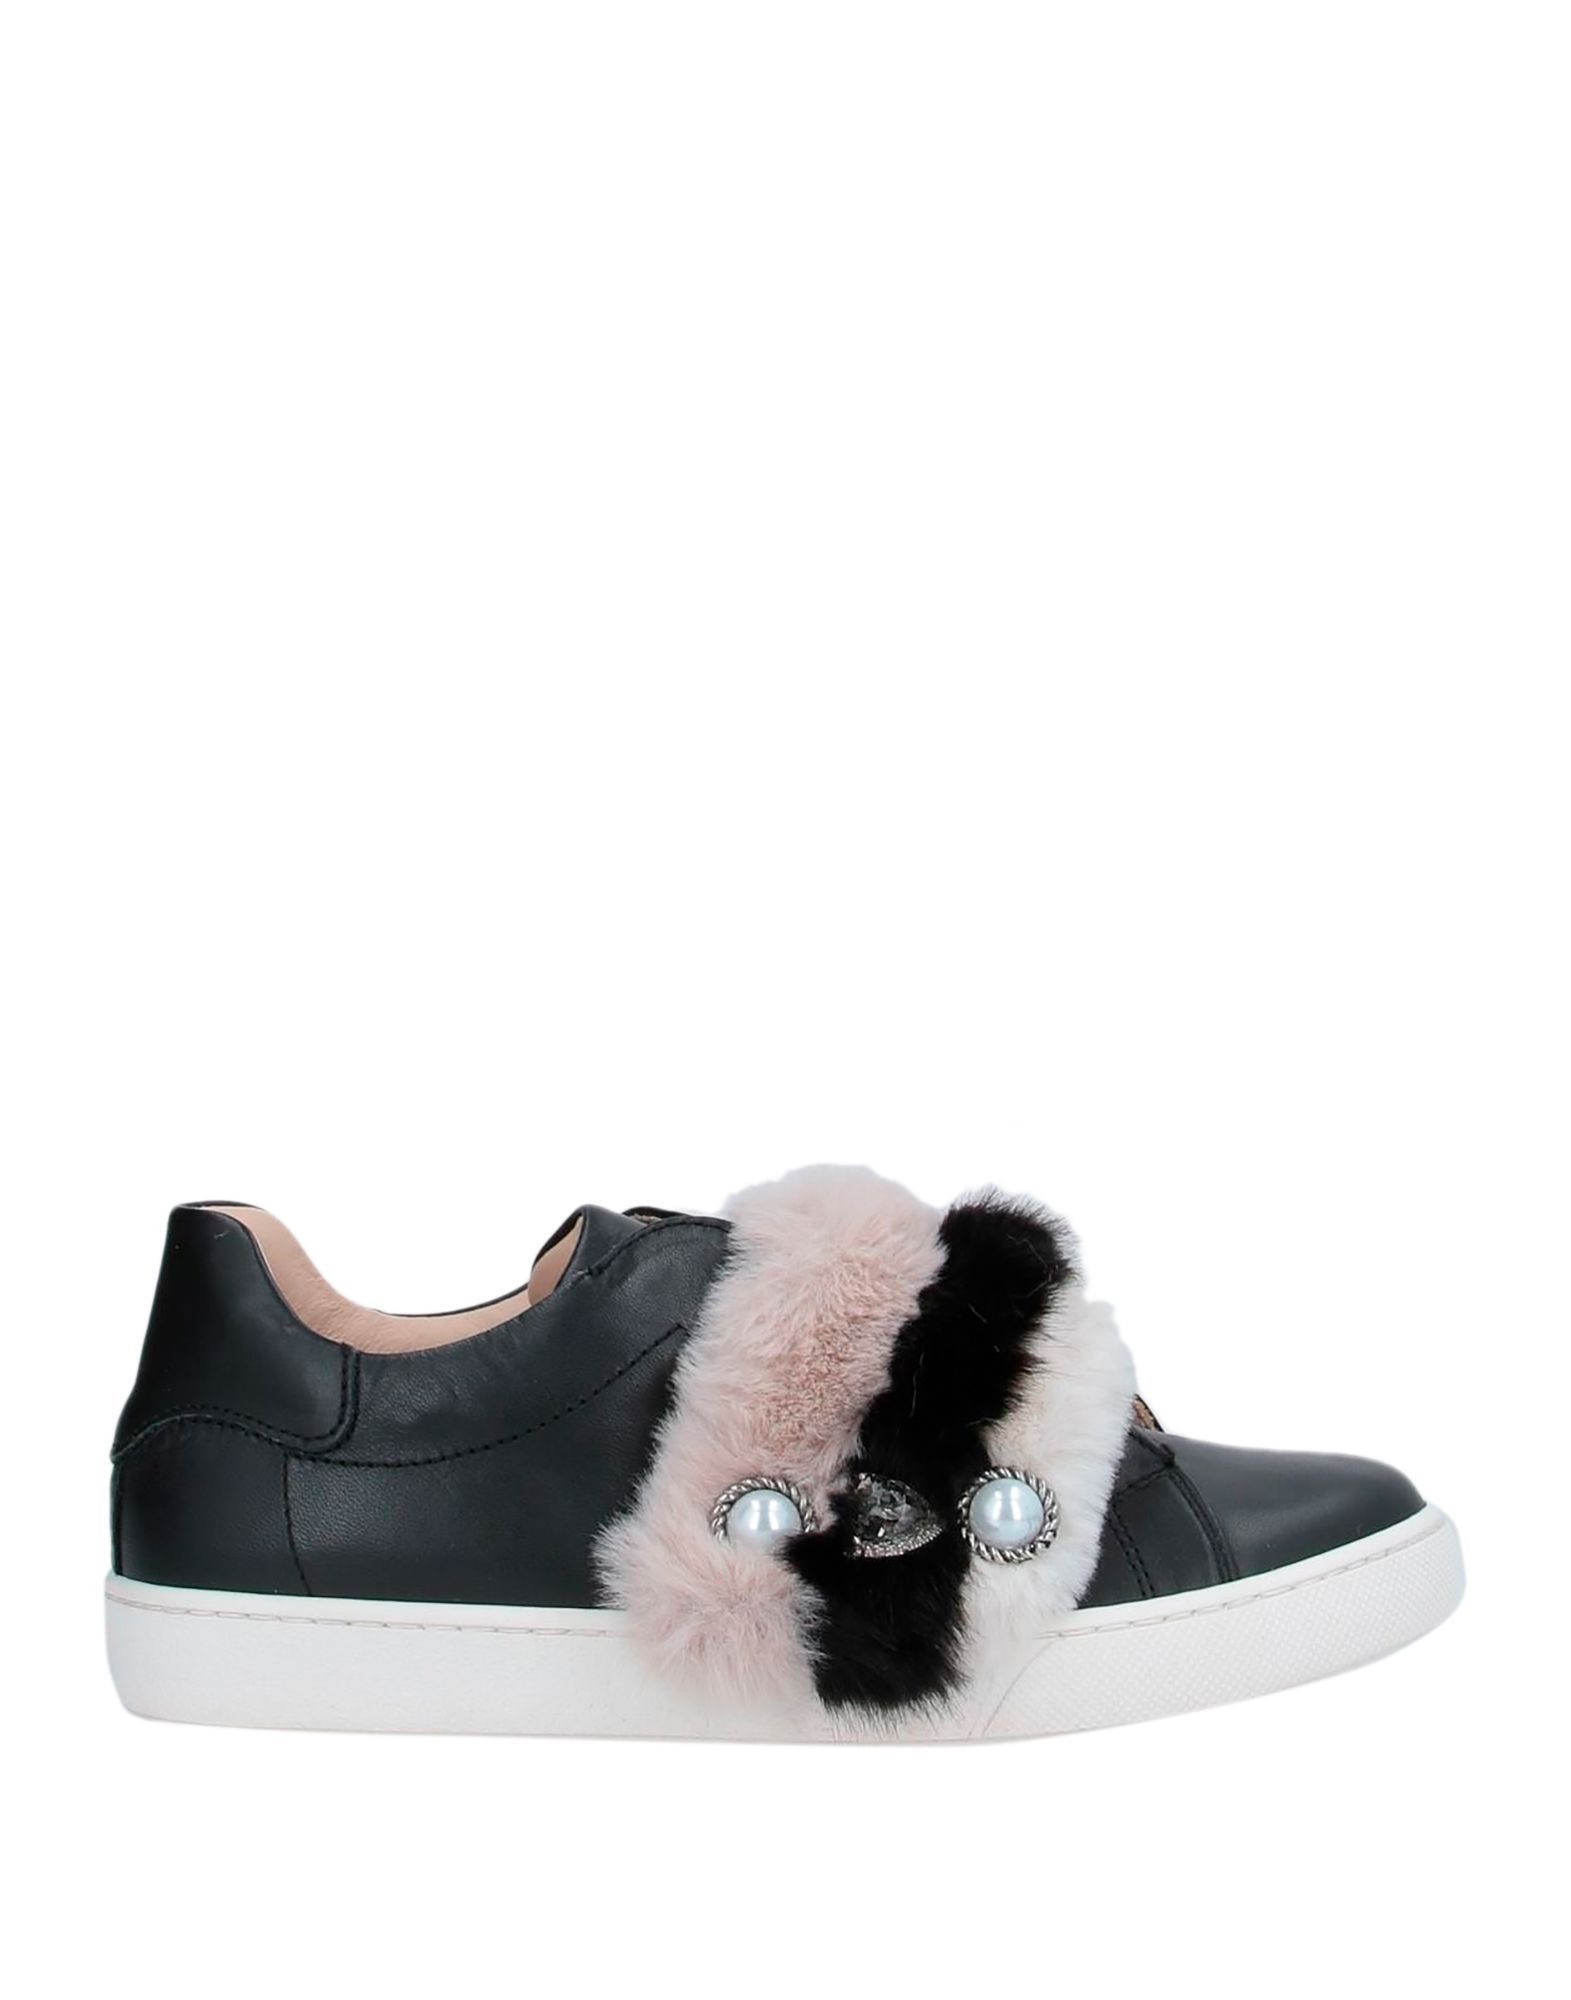 Florens Black Girl Leather Shoes